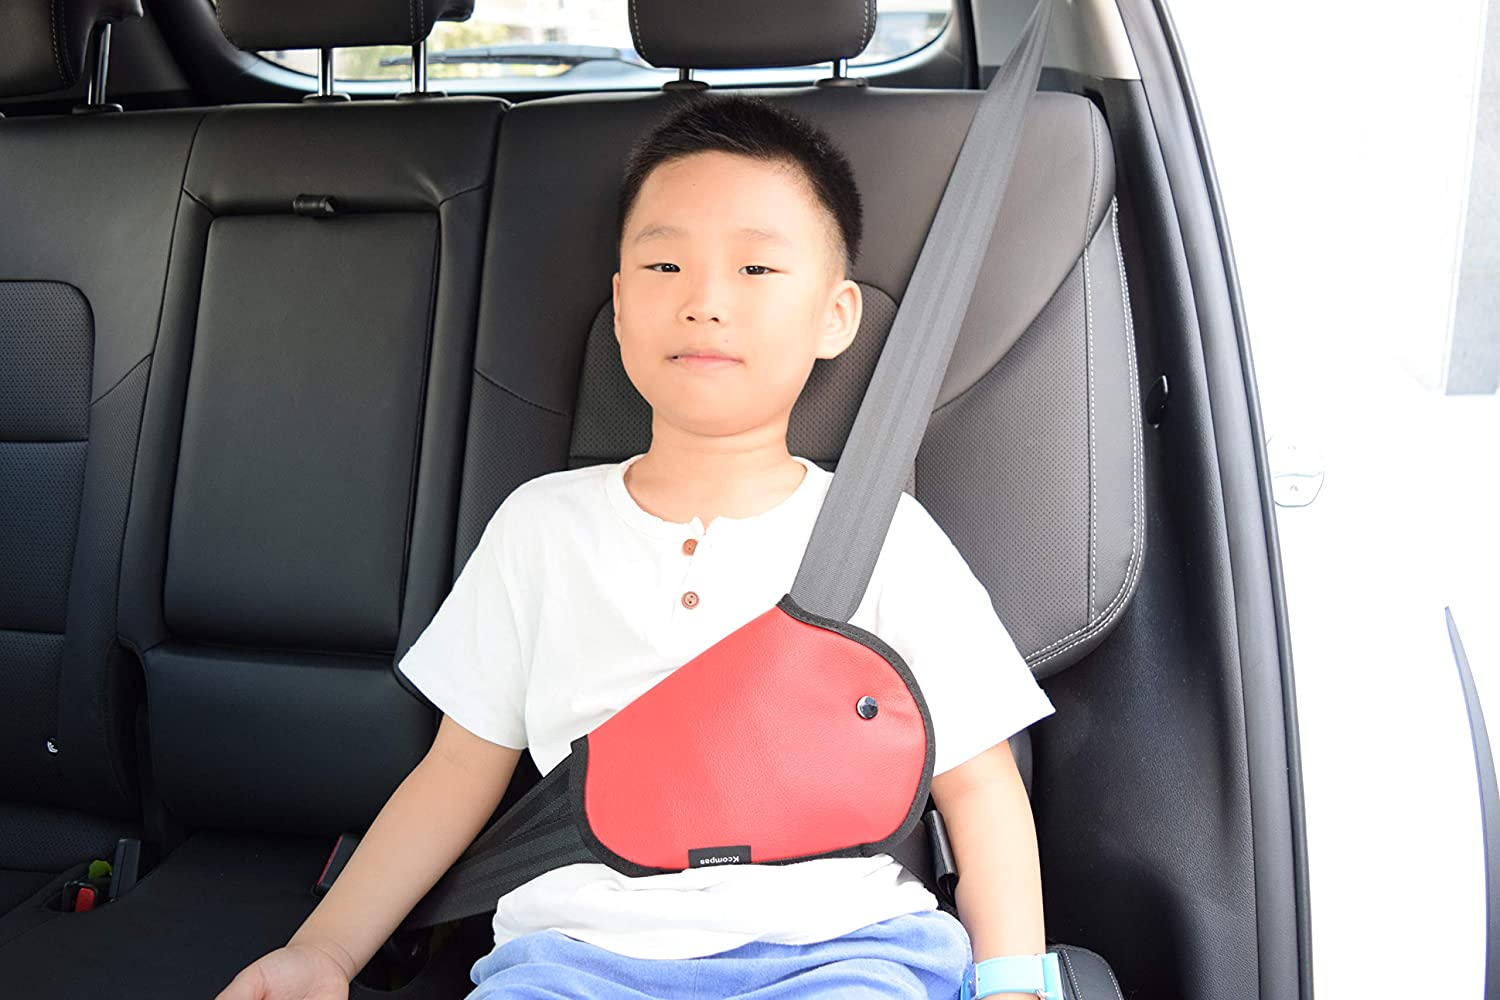 GotoShop Car Kids Seat Belt Cover Harness Repositions Strap Adjuster Leatherette Pad Belt Booster - Baby in Car 4